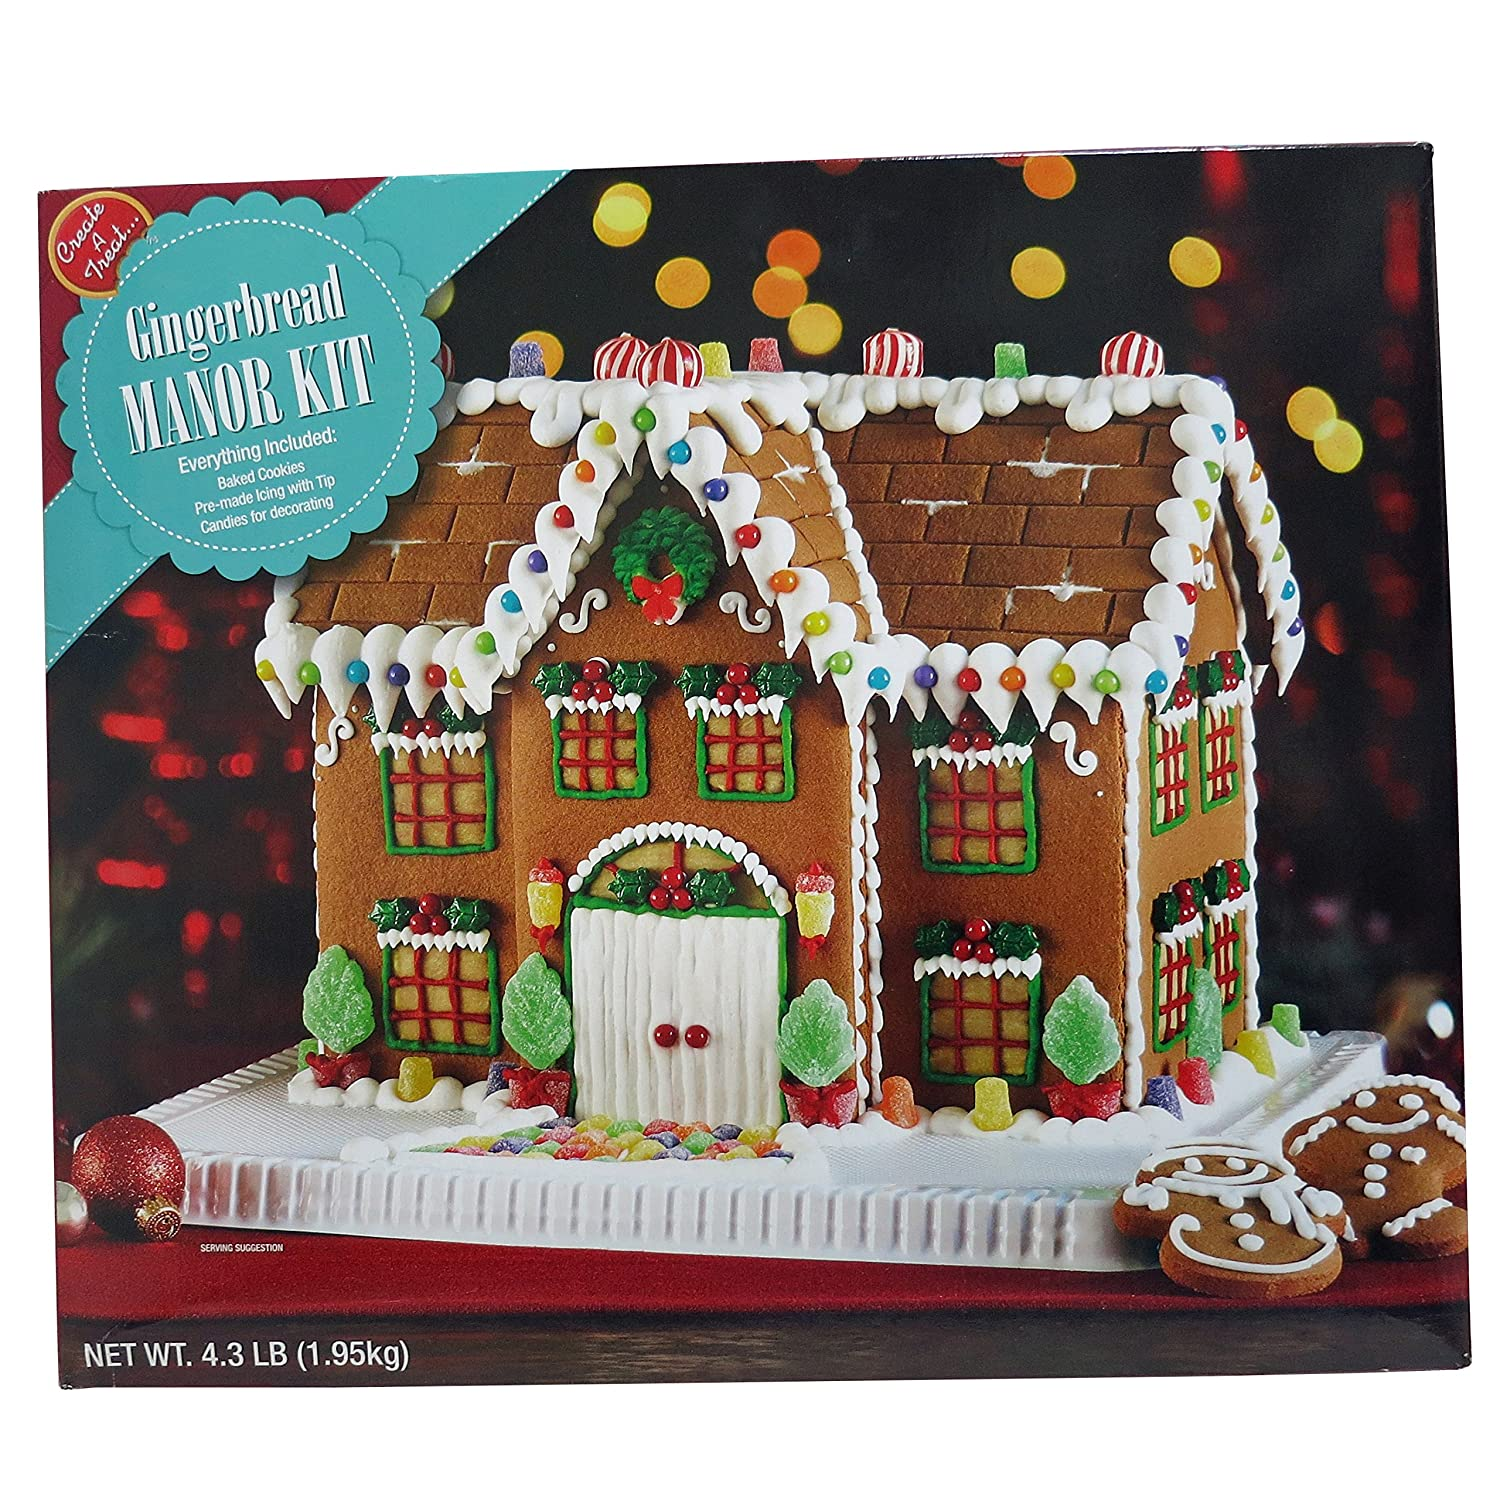 Premade Gingerbread Houses Amazoncom Deluxe Gingerbread Manor House Kit Grocery